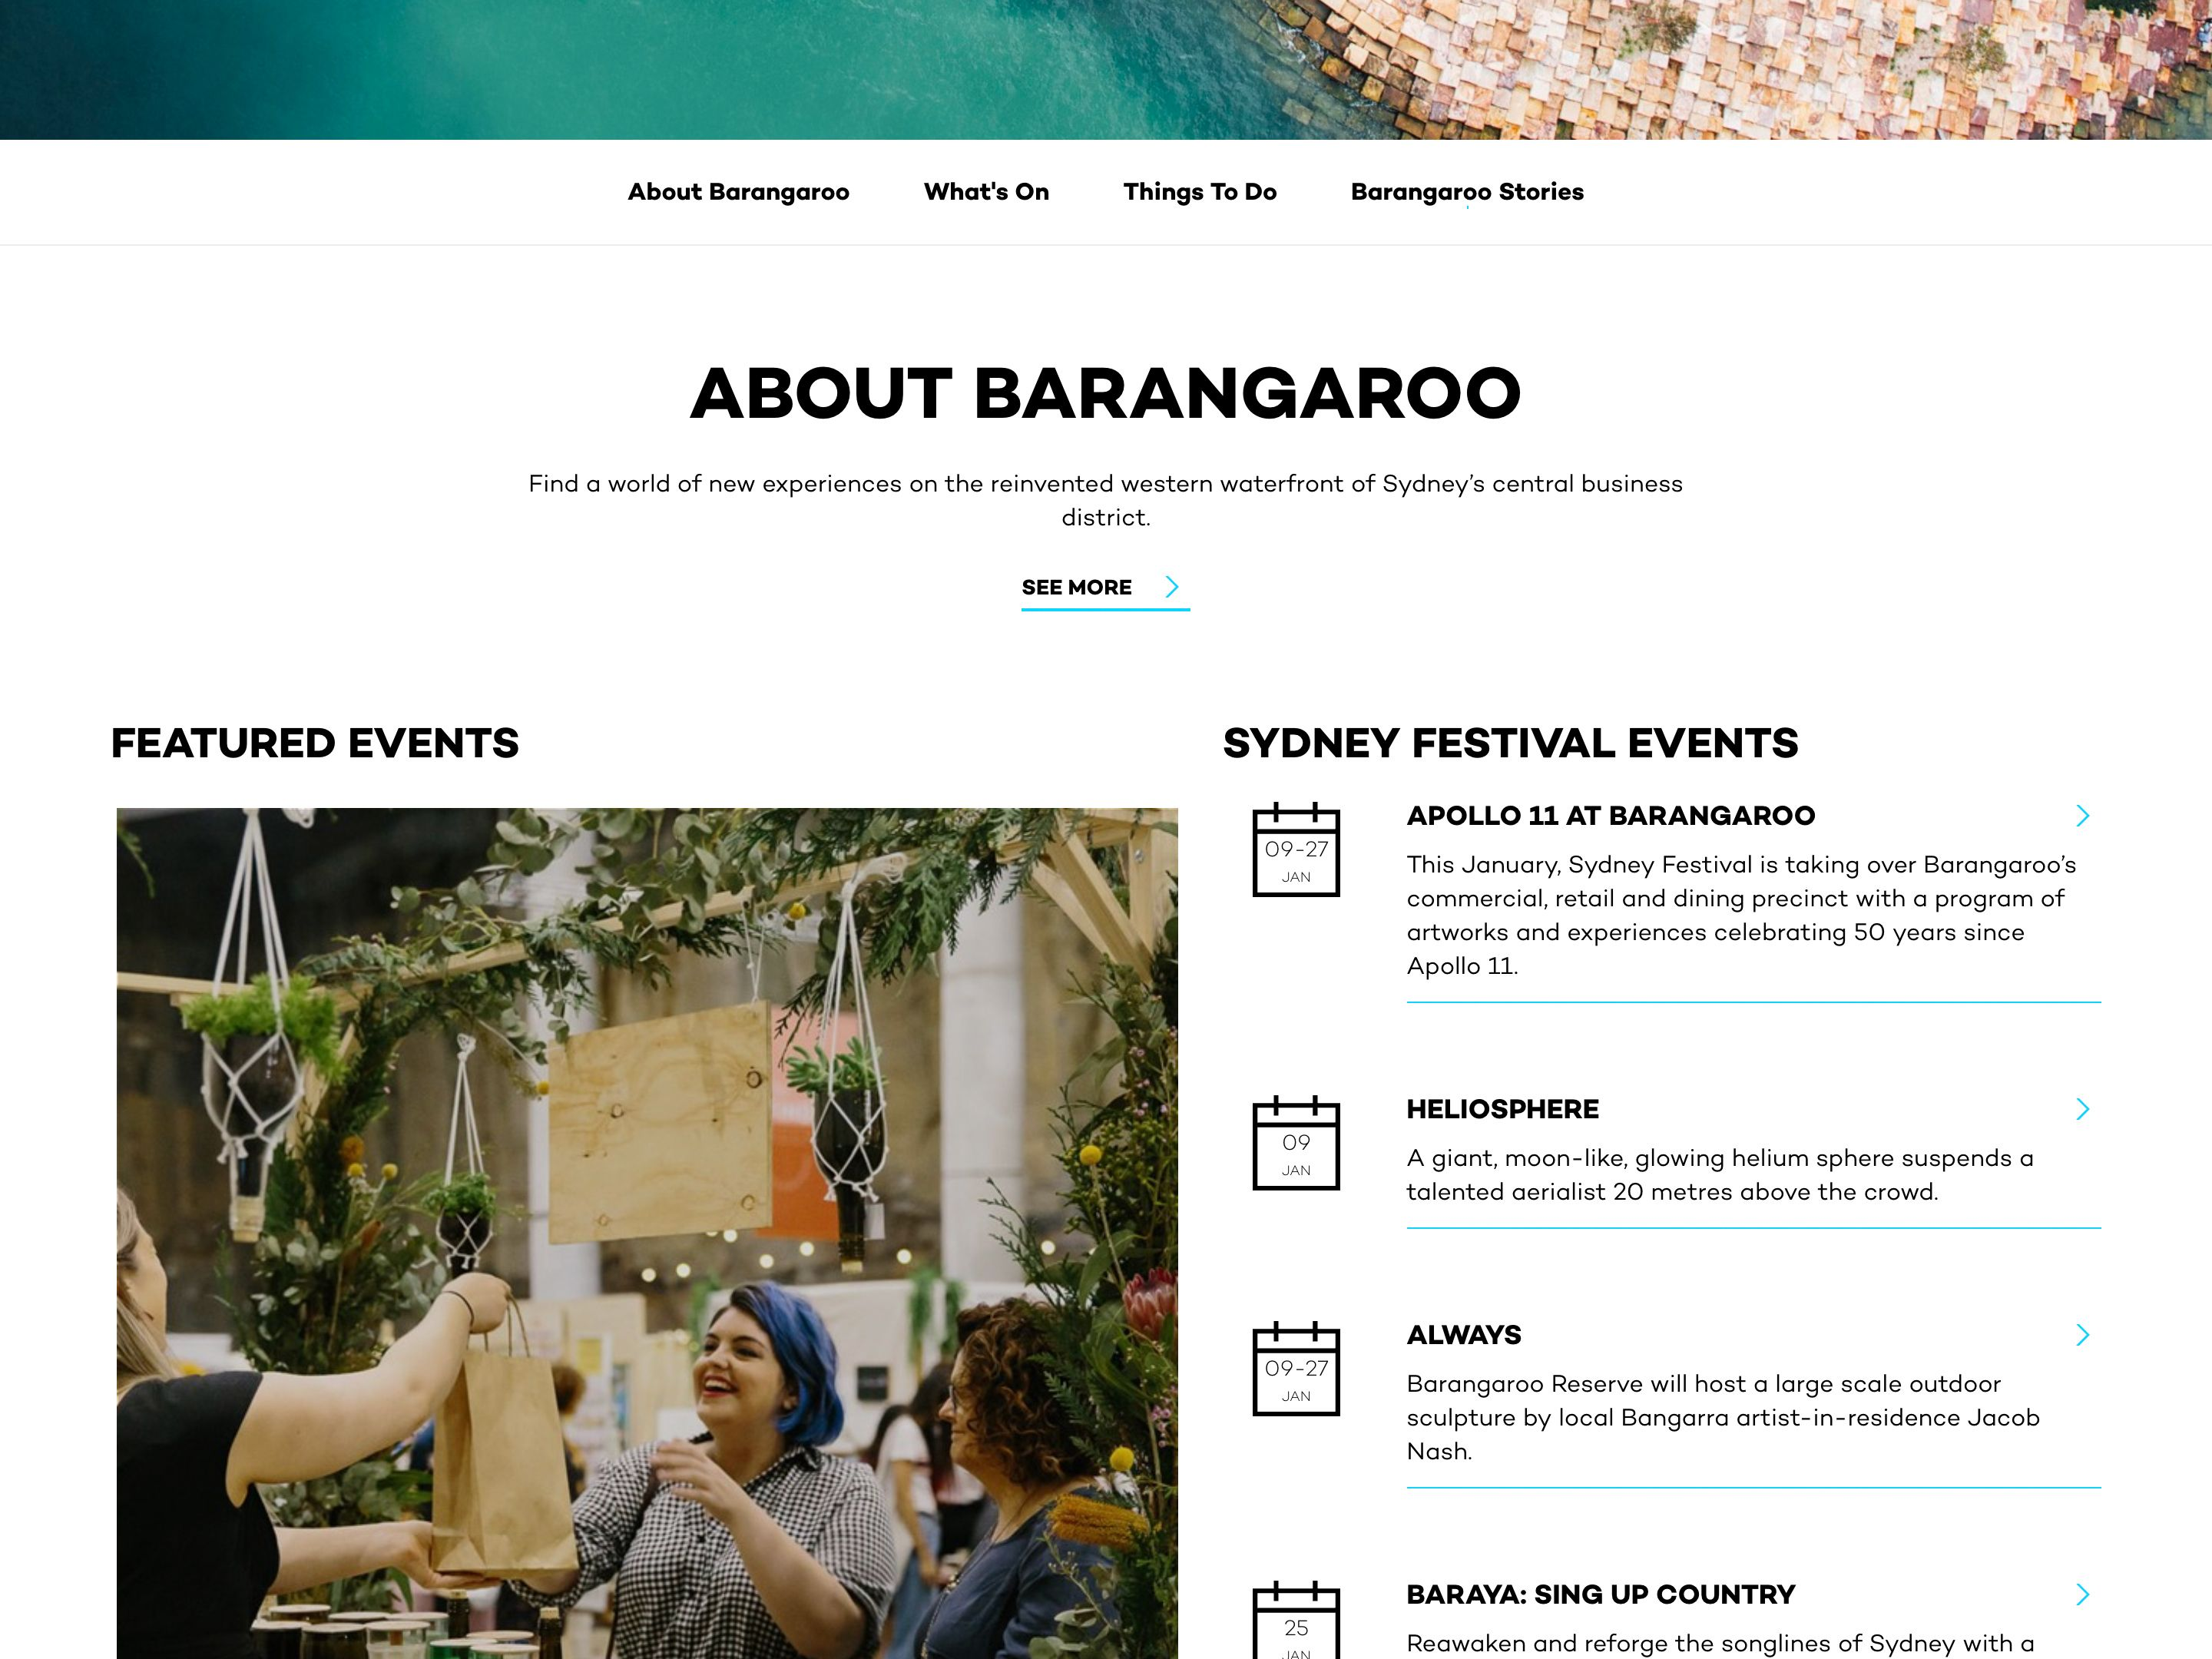 Screenshot of the See and Do page on the Barangaroo website